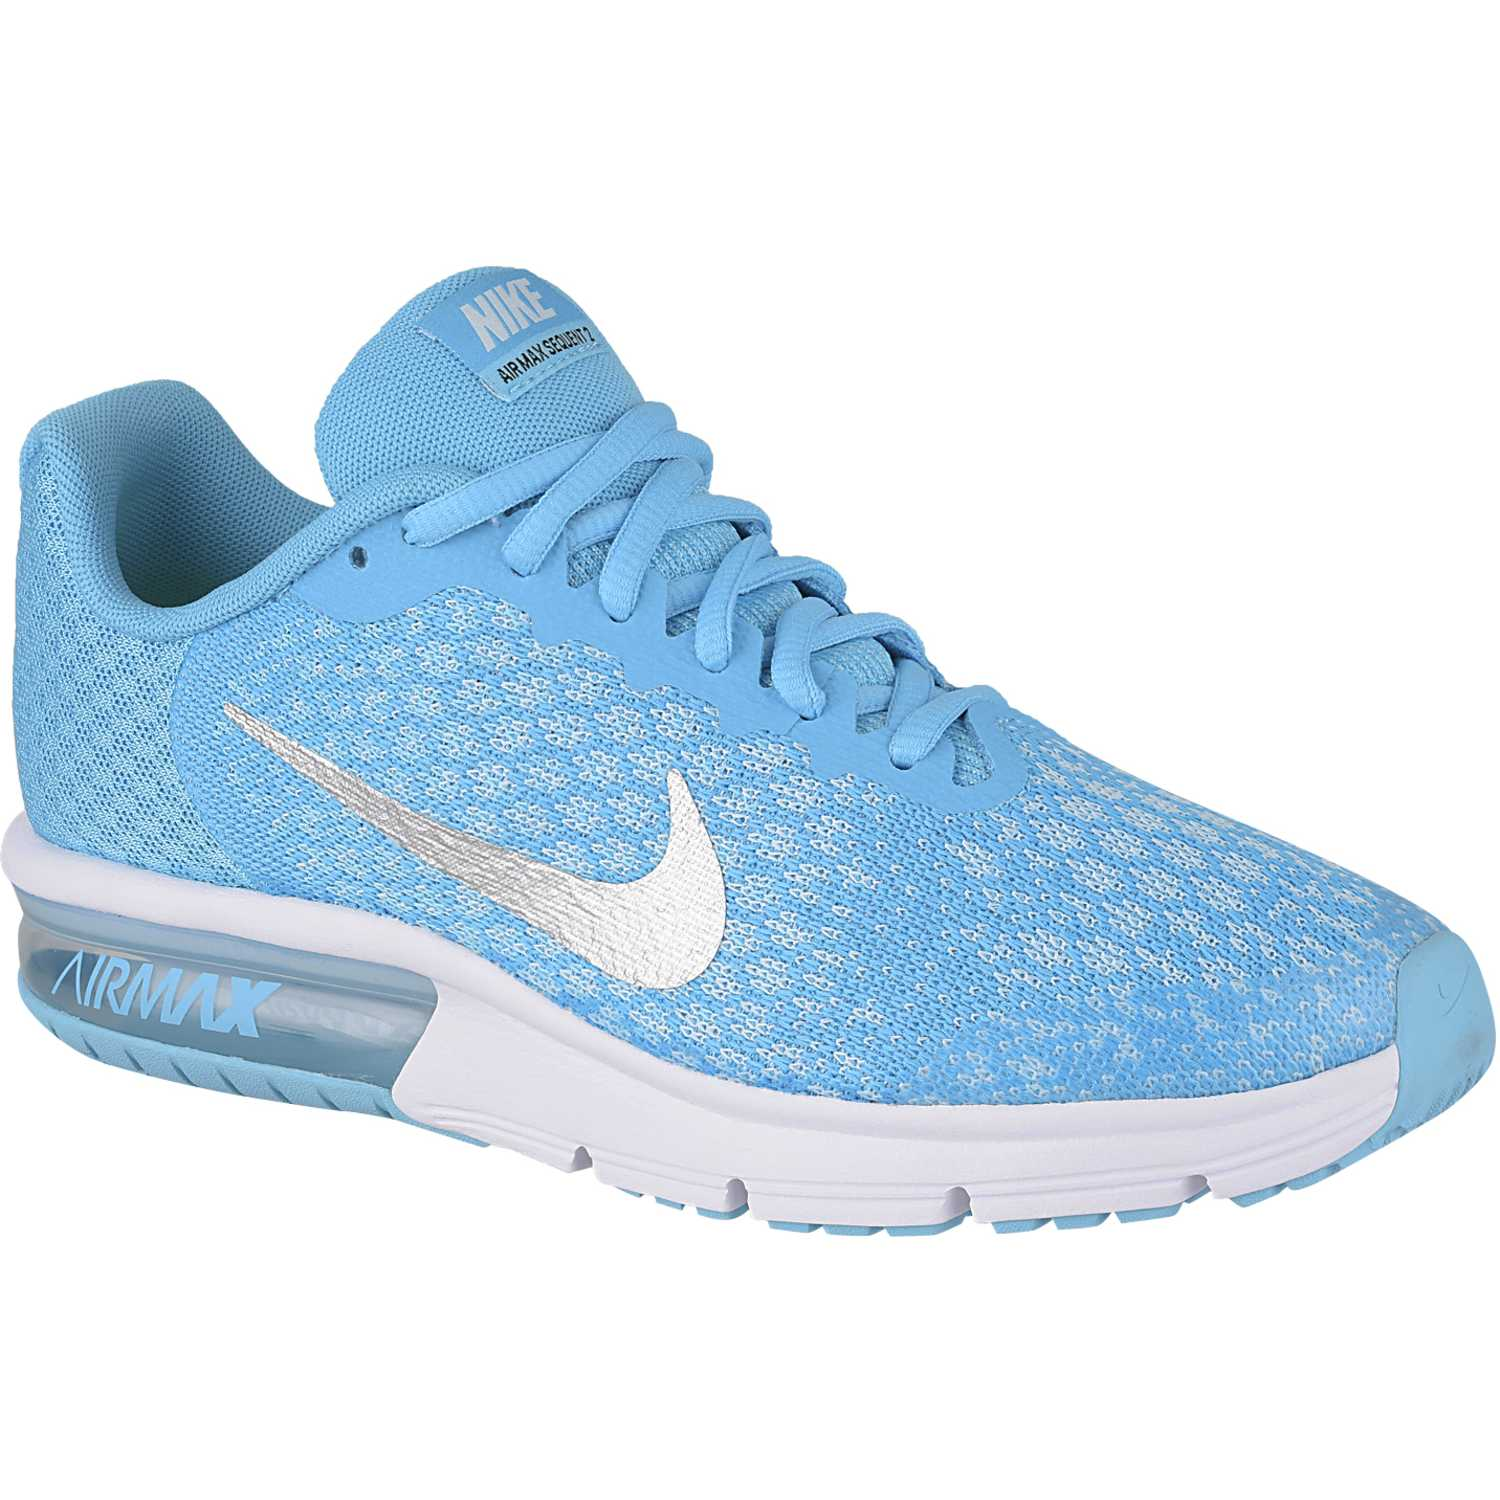 Nike air max sequent 2 gg Celeste / blanco Chicas